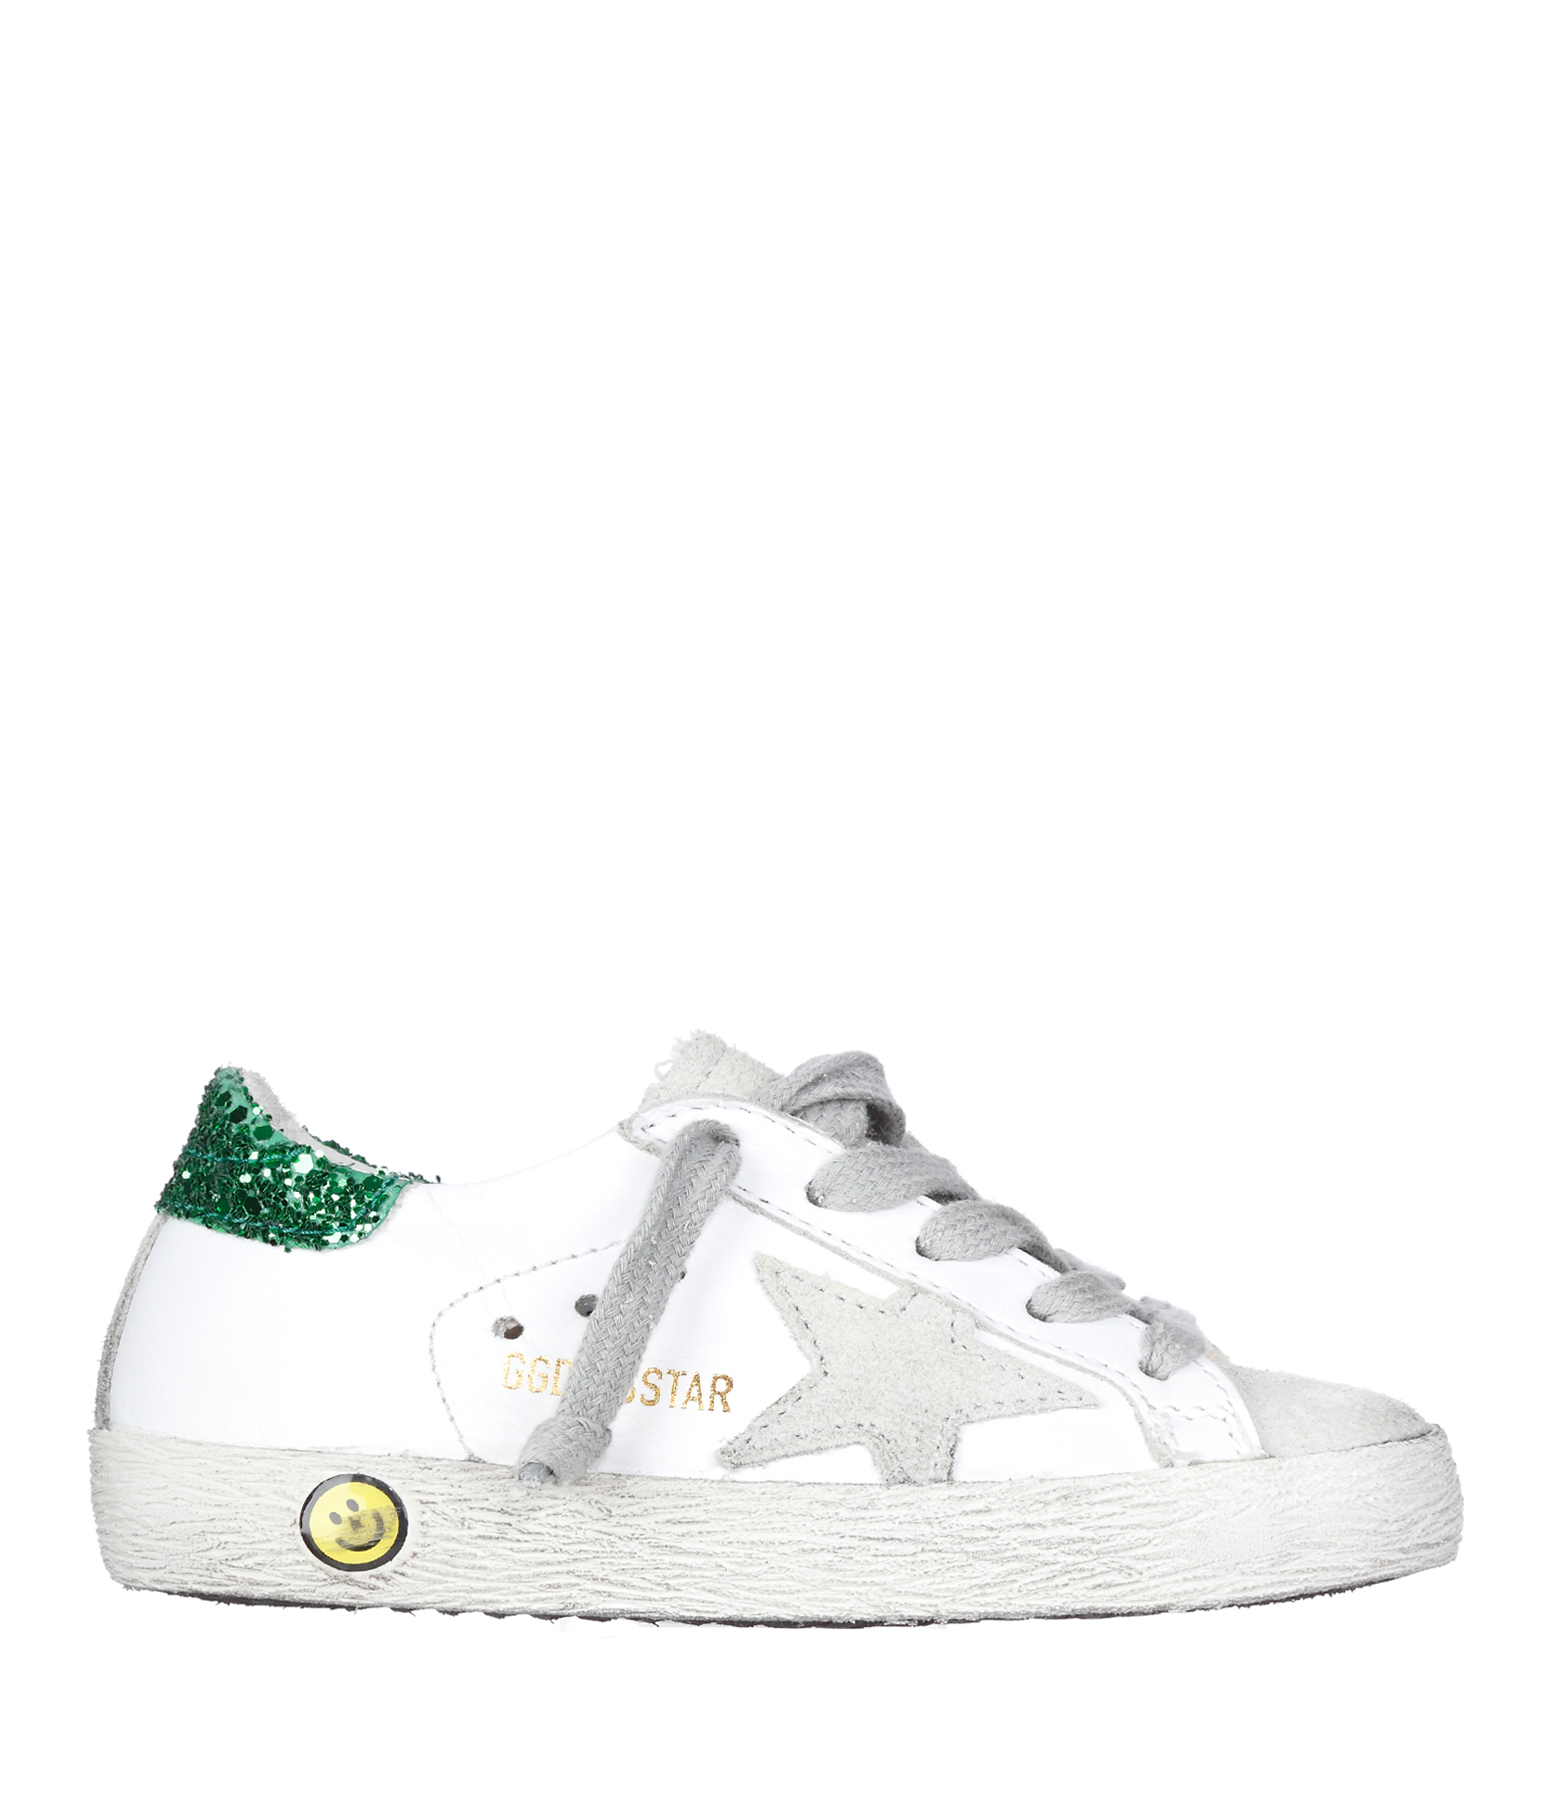 Sneakers Enfant Superstar Cuir White Green Glitter